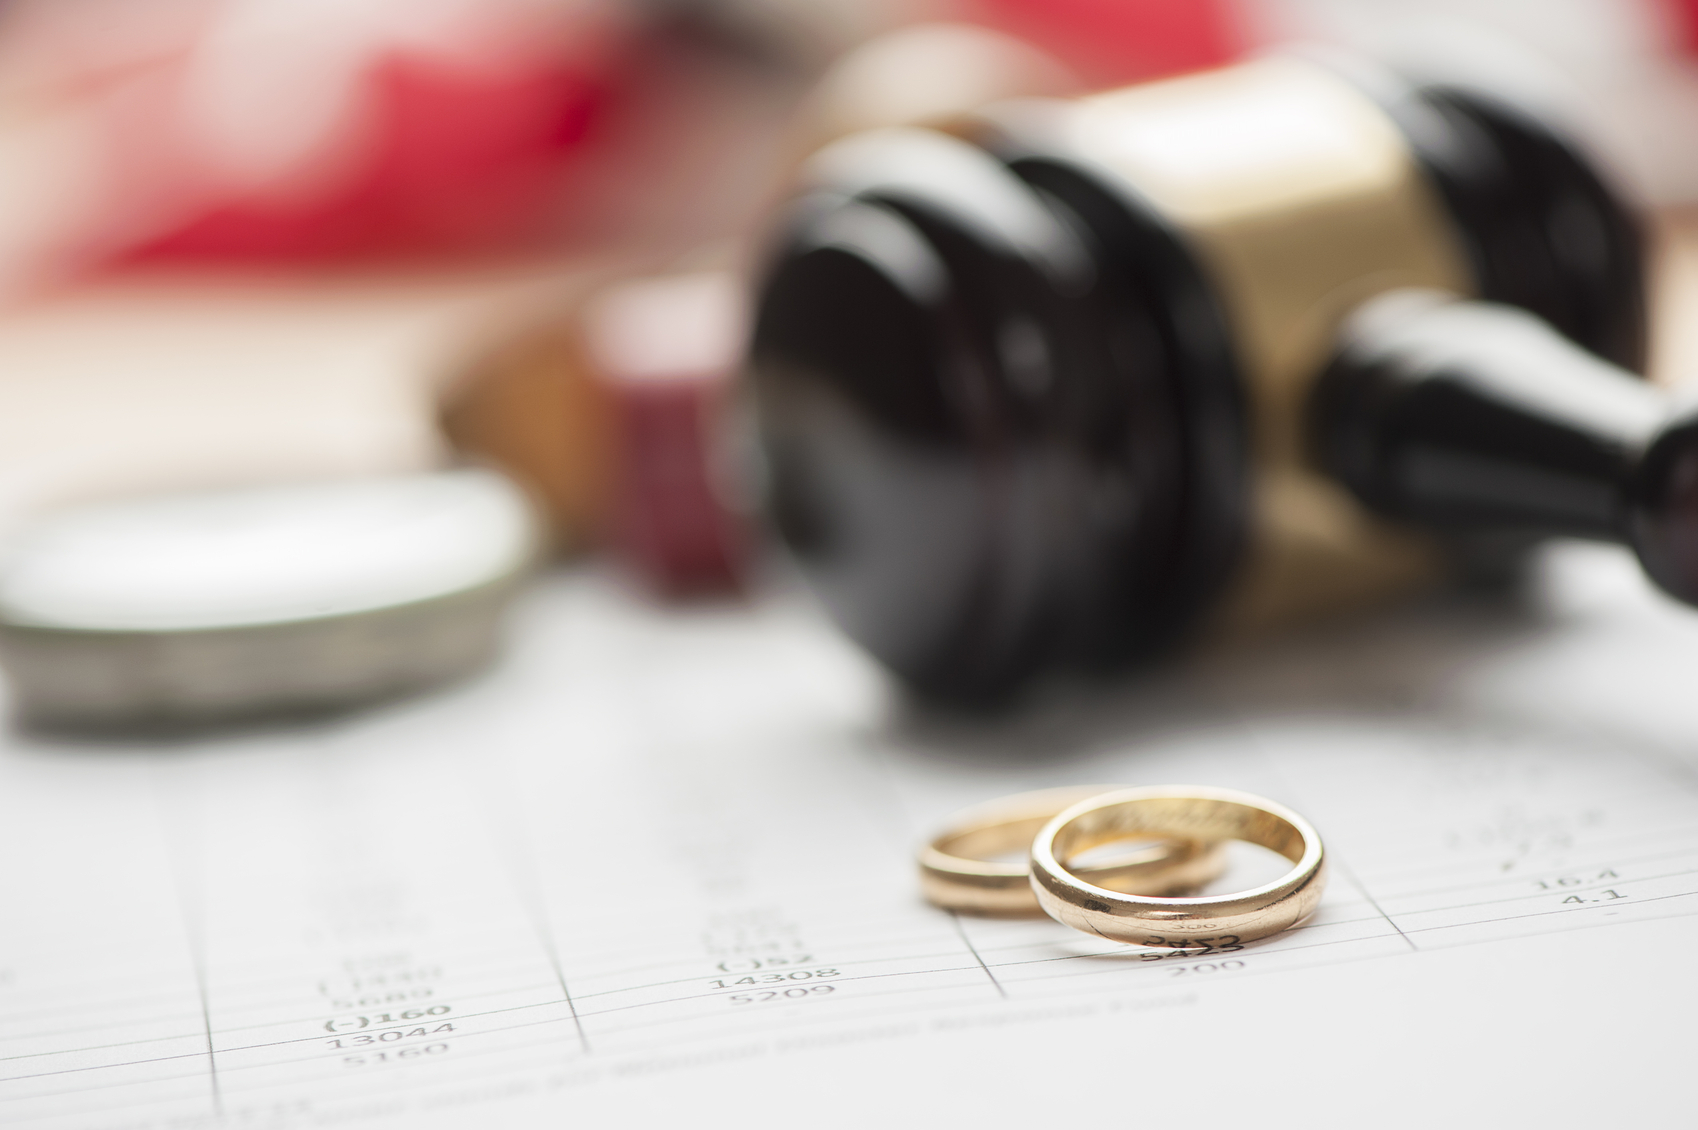 Gavel and wedding rings for divorce concept